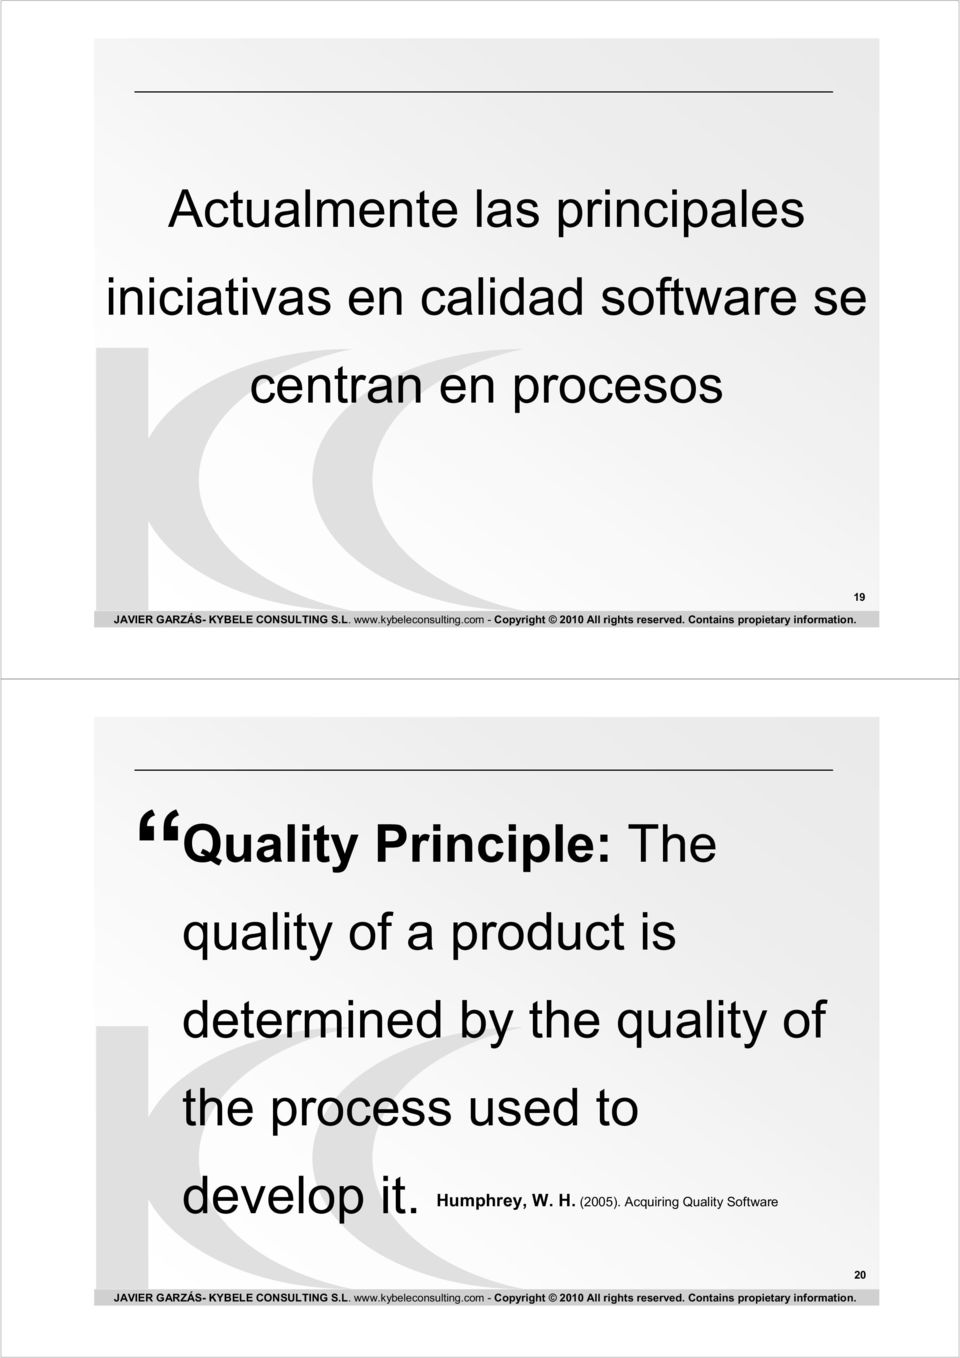 product is determined by the quality of the process used to